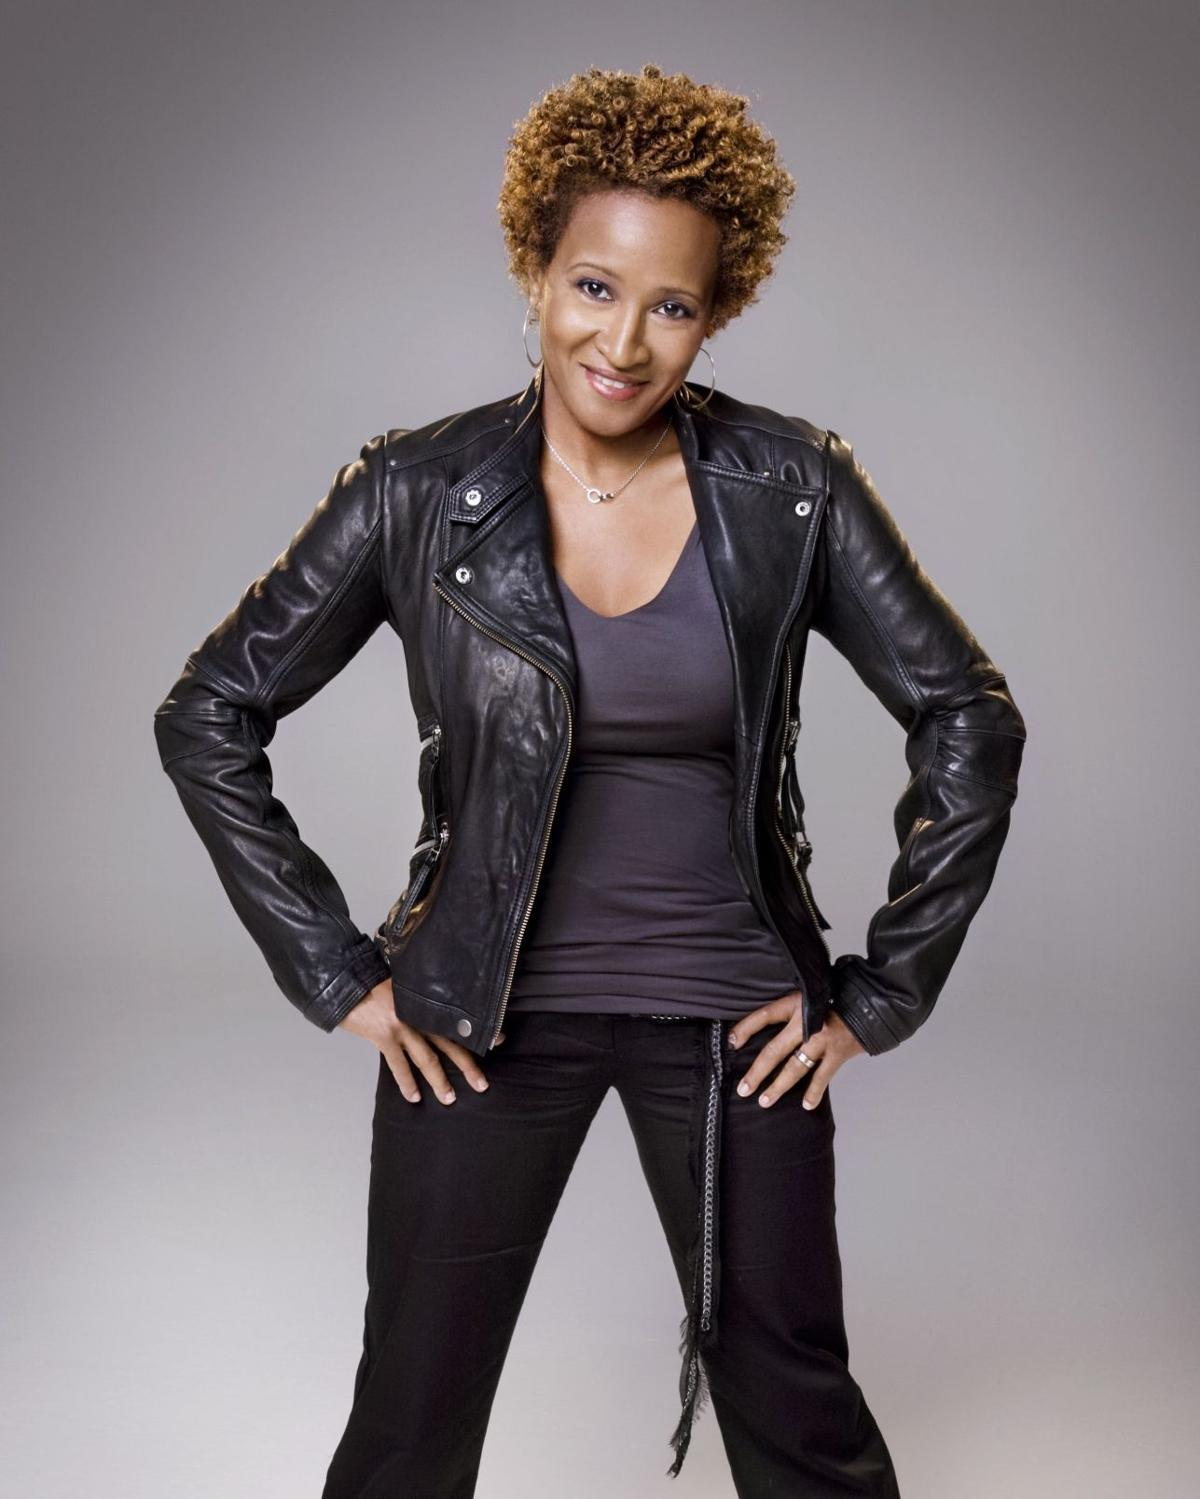 Funny proud Wanda Sykes grows into role as comedy's activist